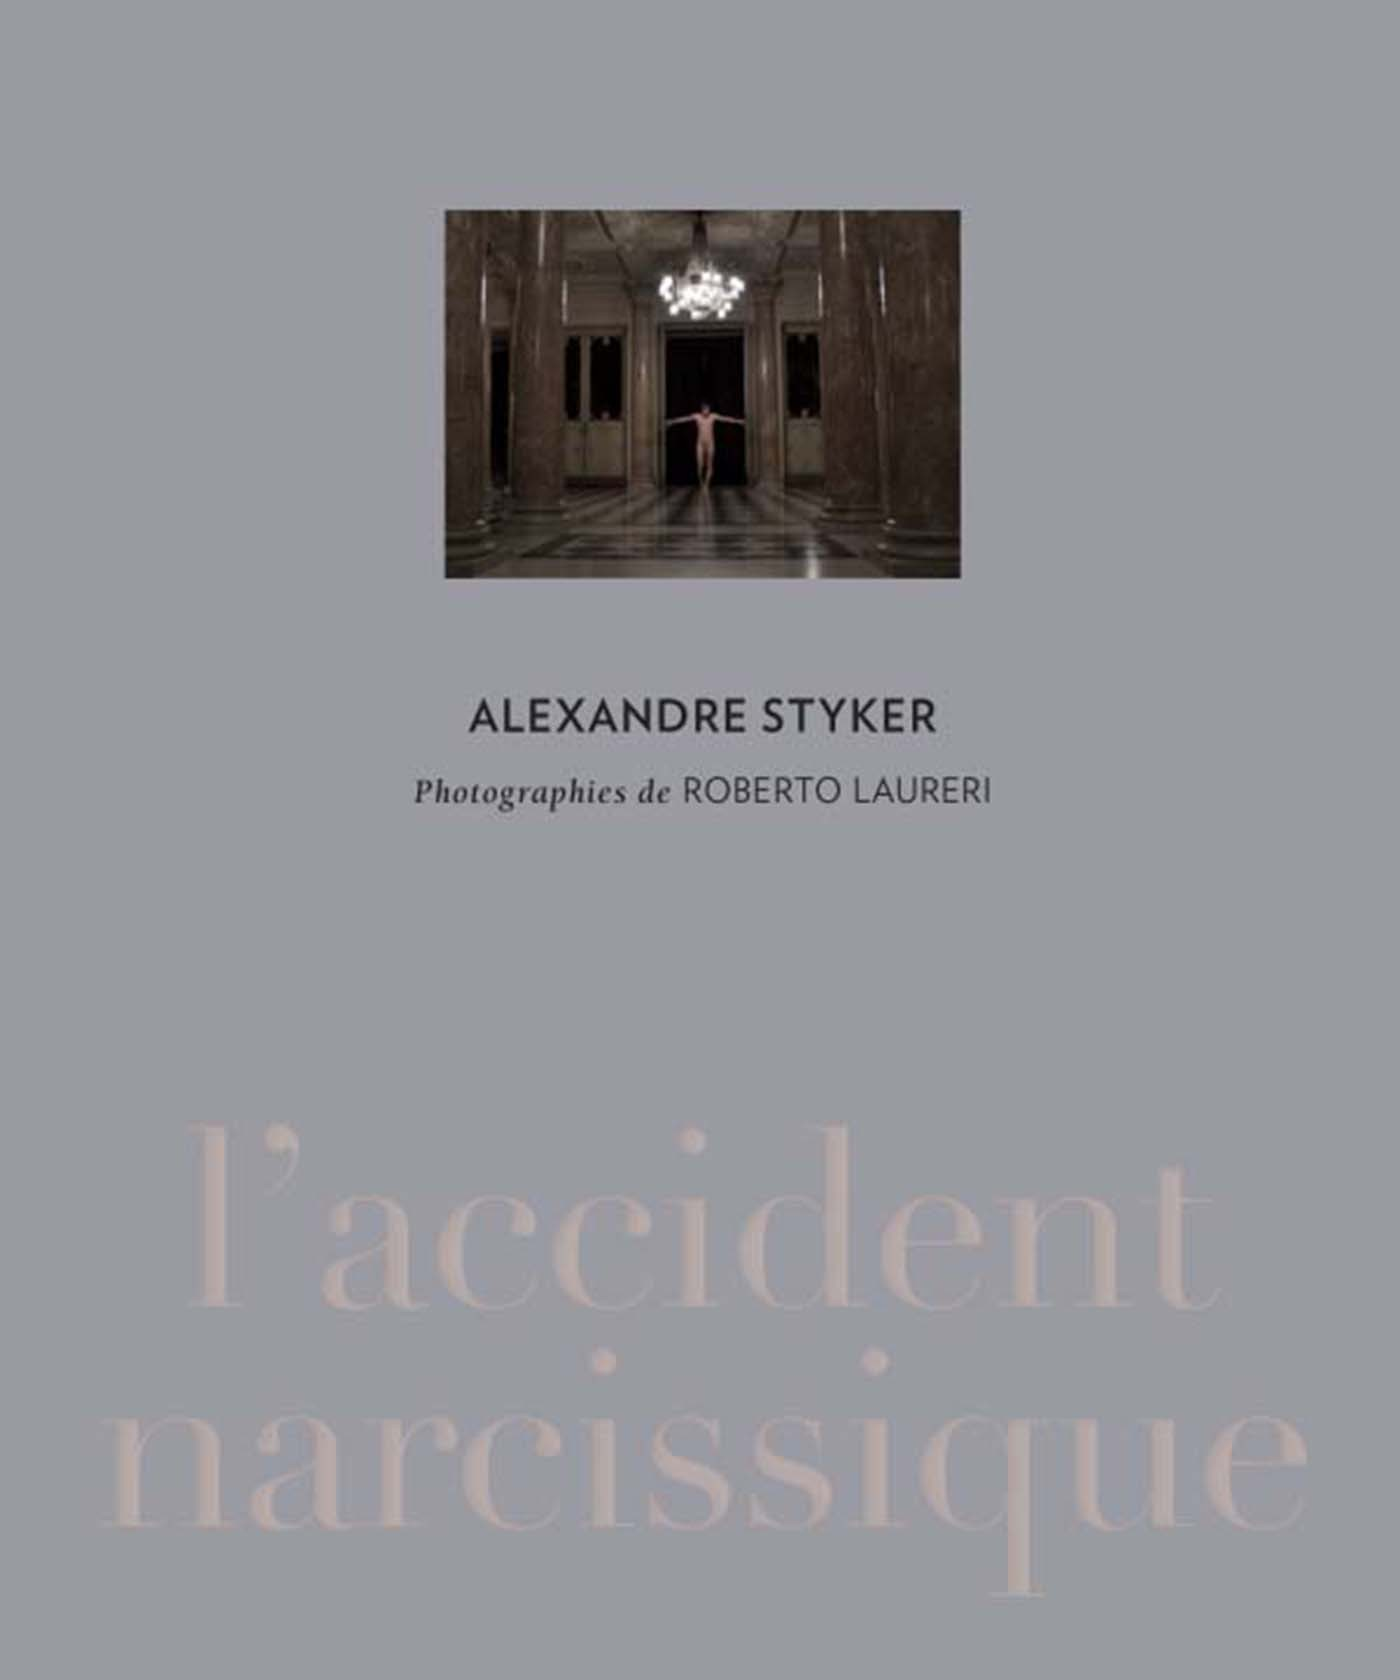 ALEXANDRE STYKER. L'ACCIDENT NARCISSIQUE